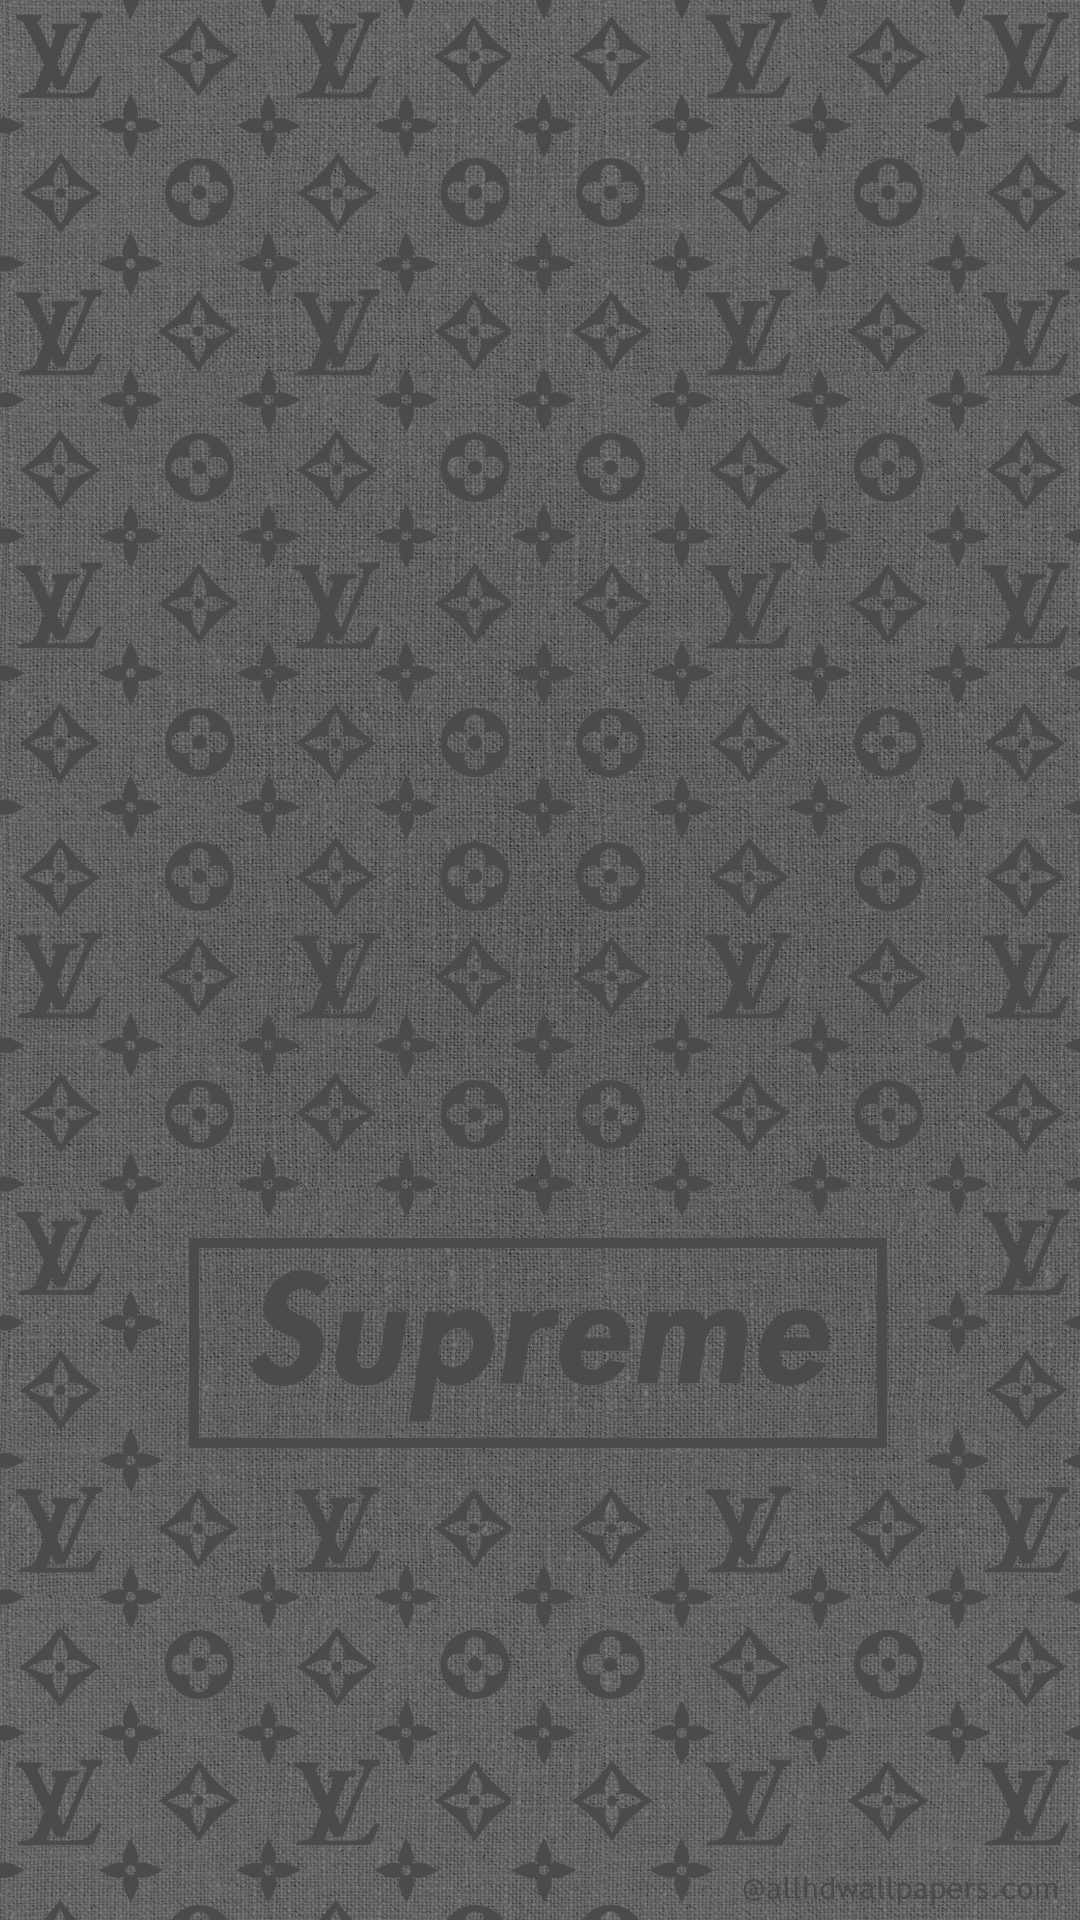 70 Supreme Wallpapers In 4k Allhdwallpapers S Wallpaper